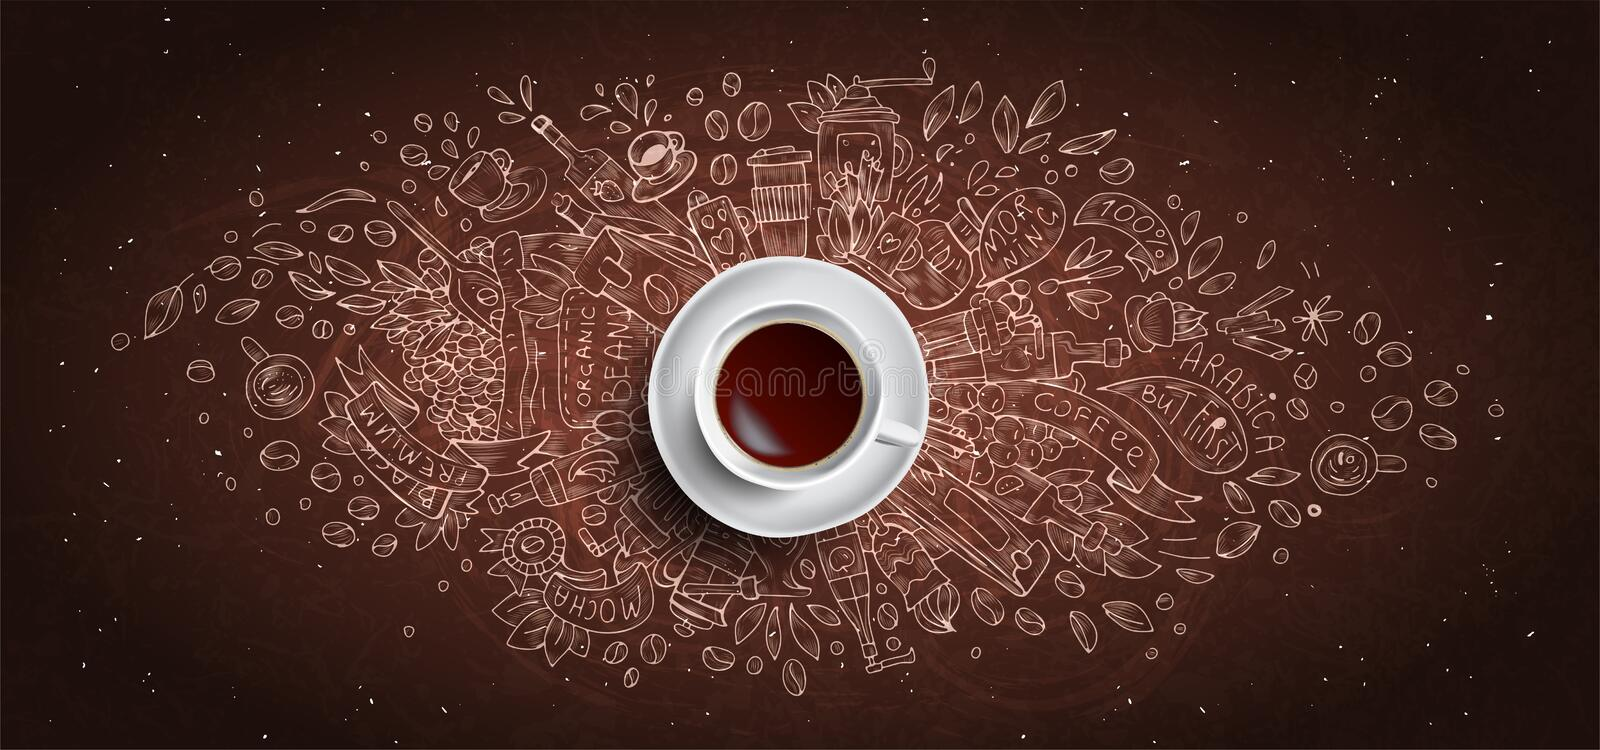 Coffee chalk illustrated concept on black board background - white coffee cup, top view with chalk doodle illustration vector illustration